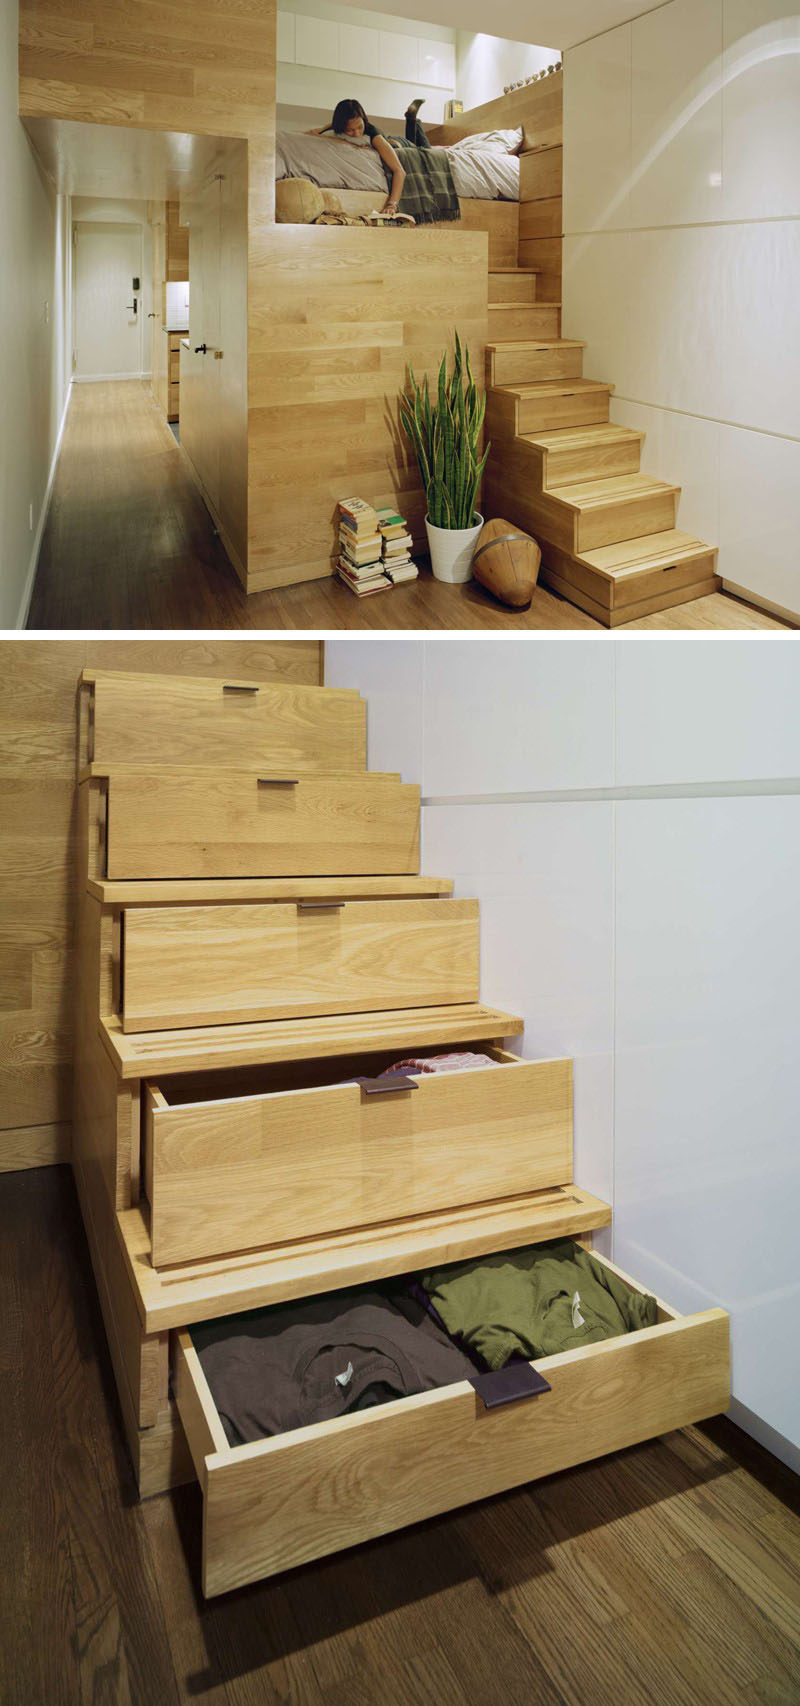 13 stair design ideas for small spaces contemporist for Great ideas for small apartments